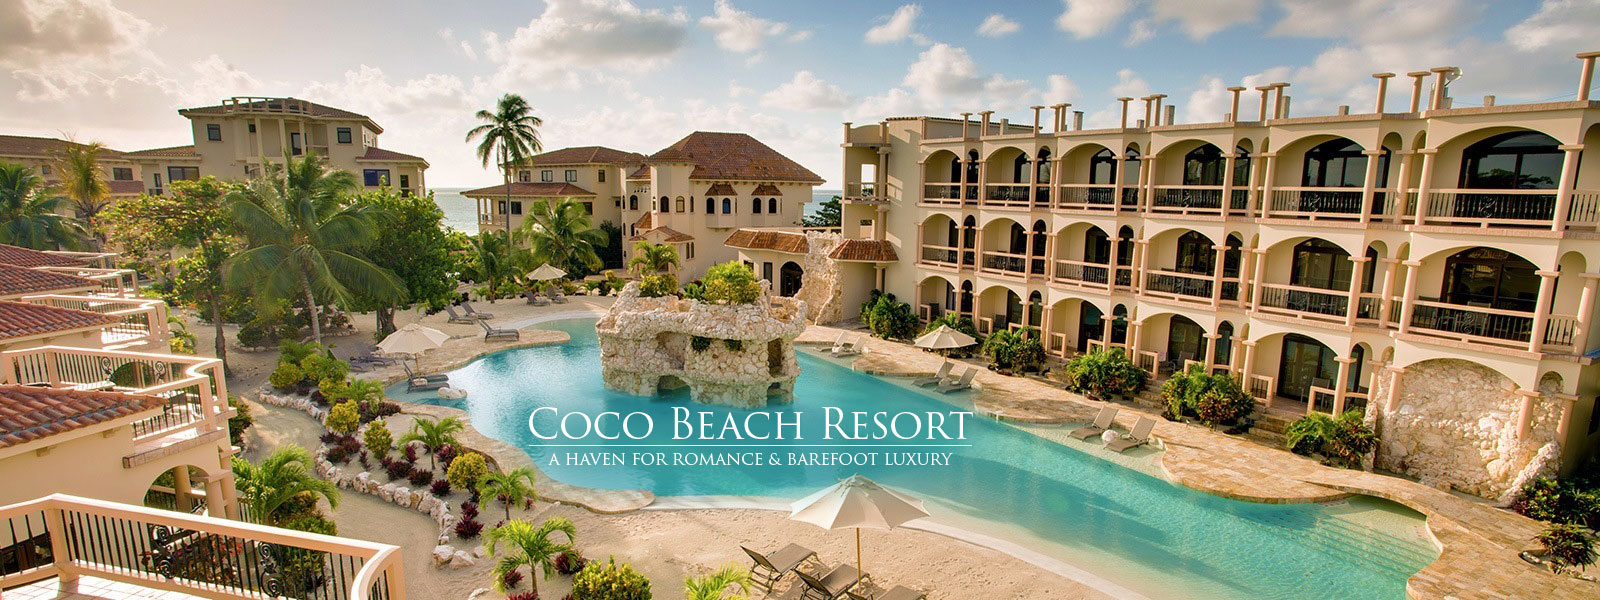 Coco Beach Resort Belize Sandy Point Resorts